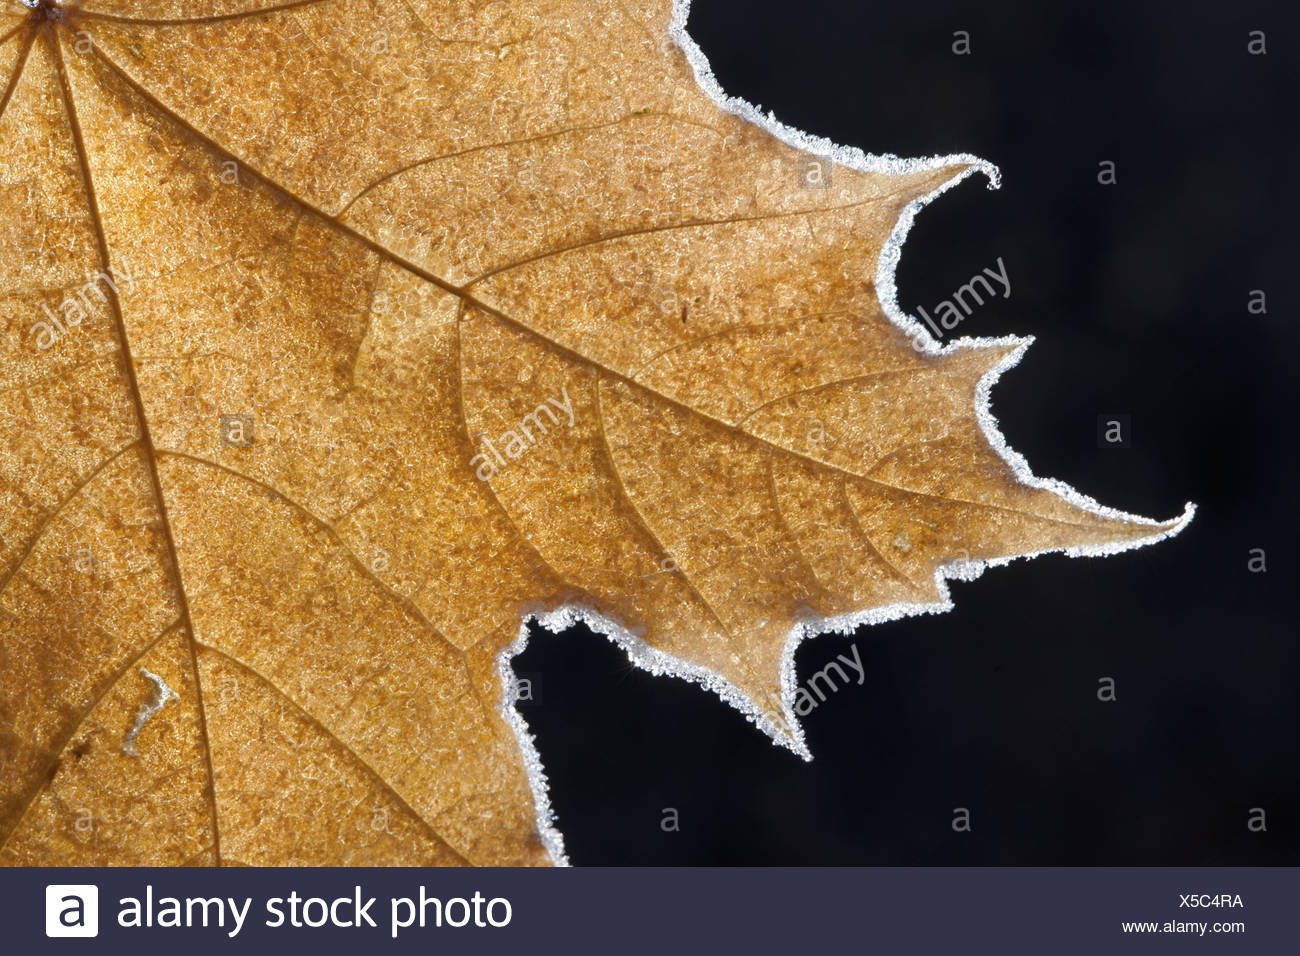 Part of a brown frosted maple leaf with central ribs and distinctive outline. - Stock Image